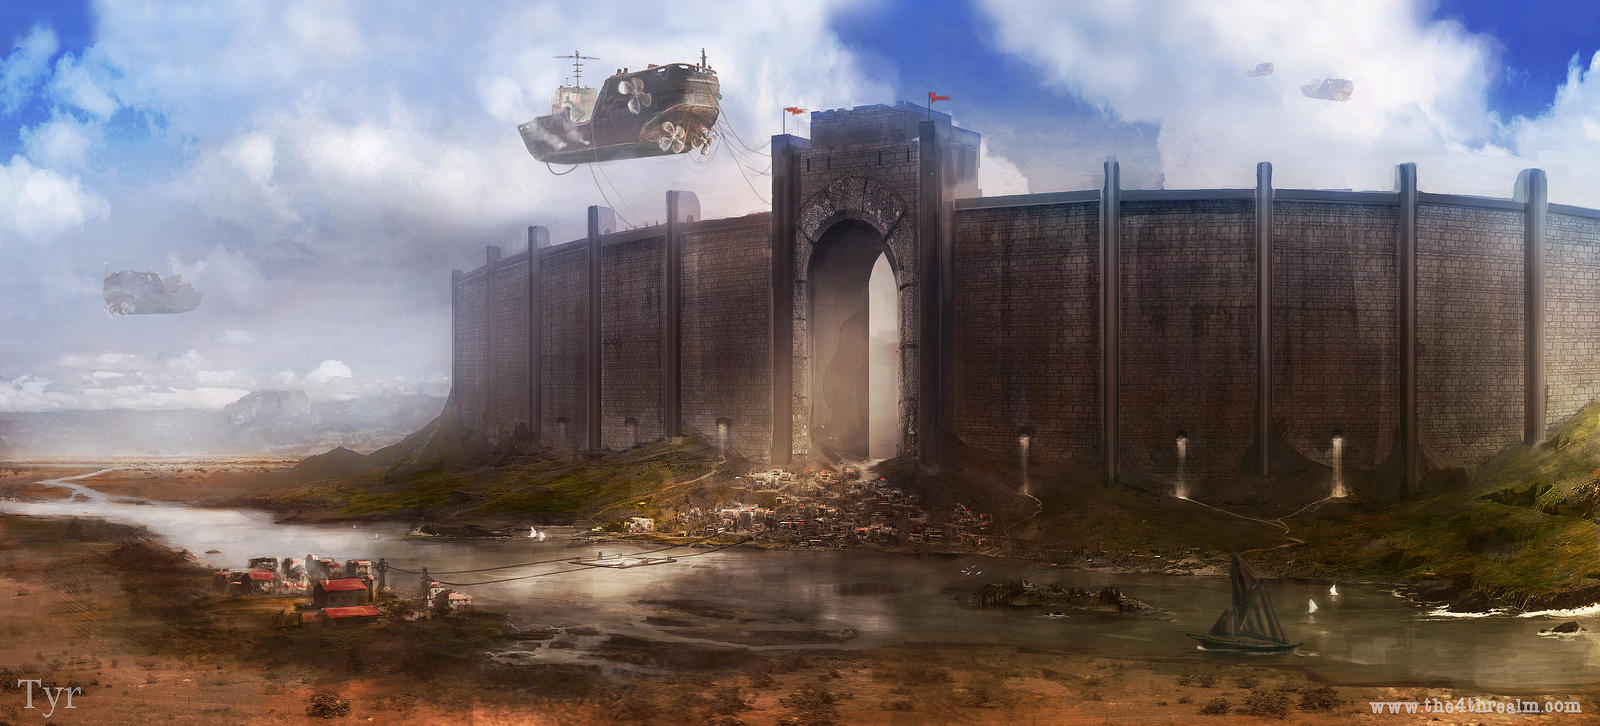 Tyr City Walls by jordangrimmer